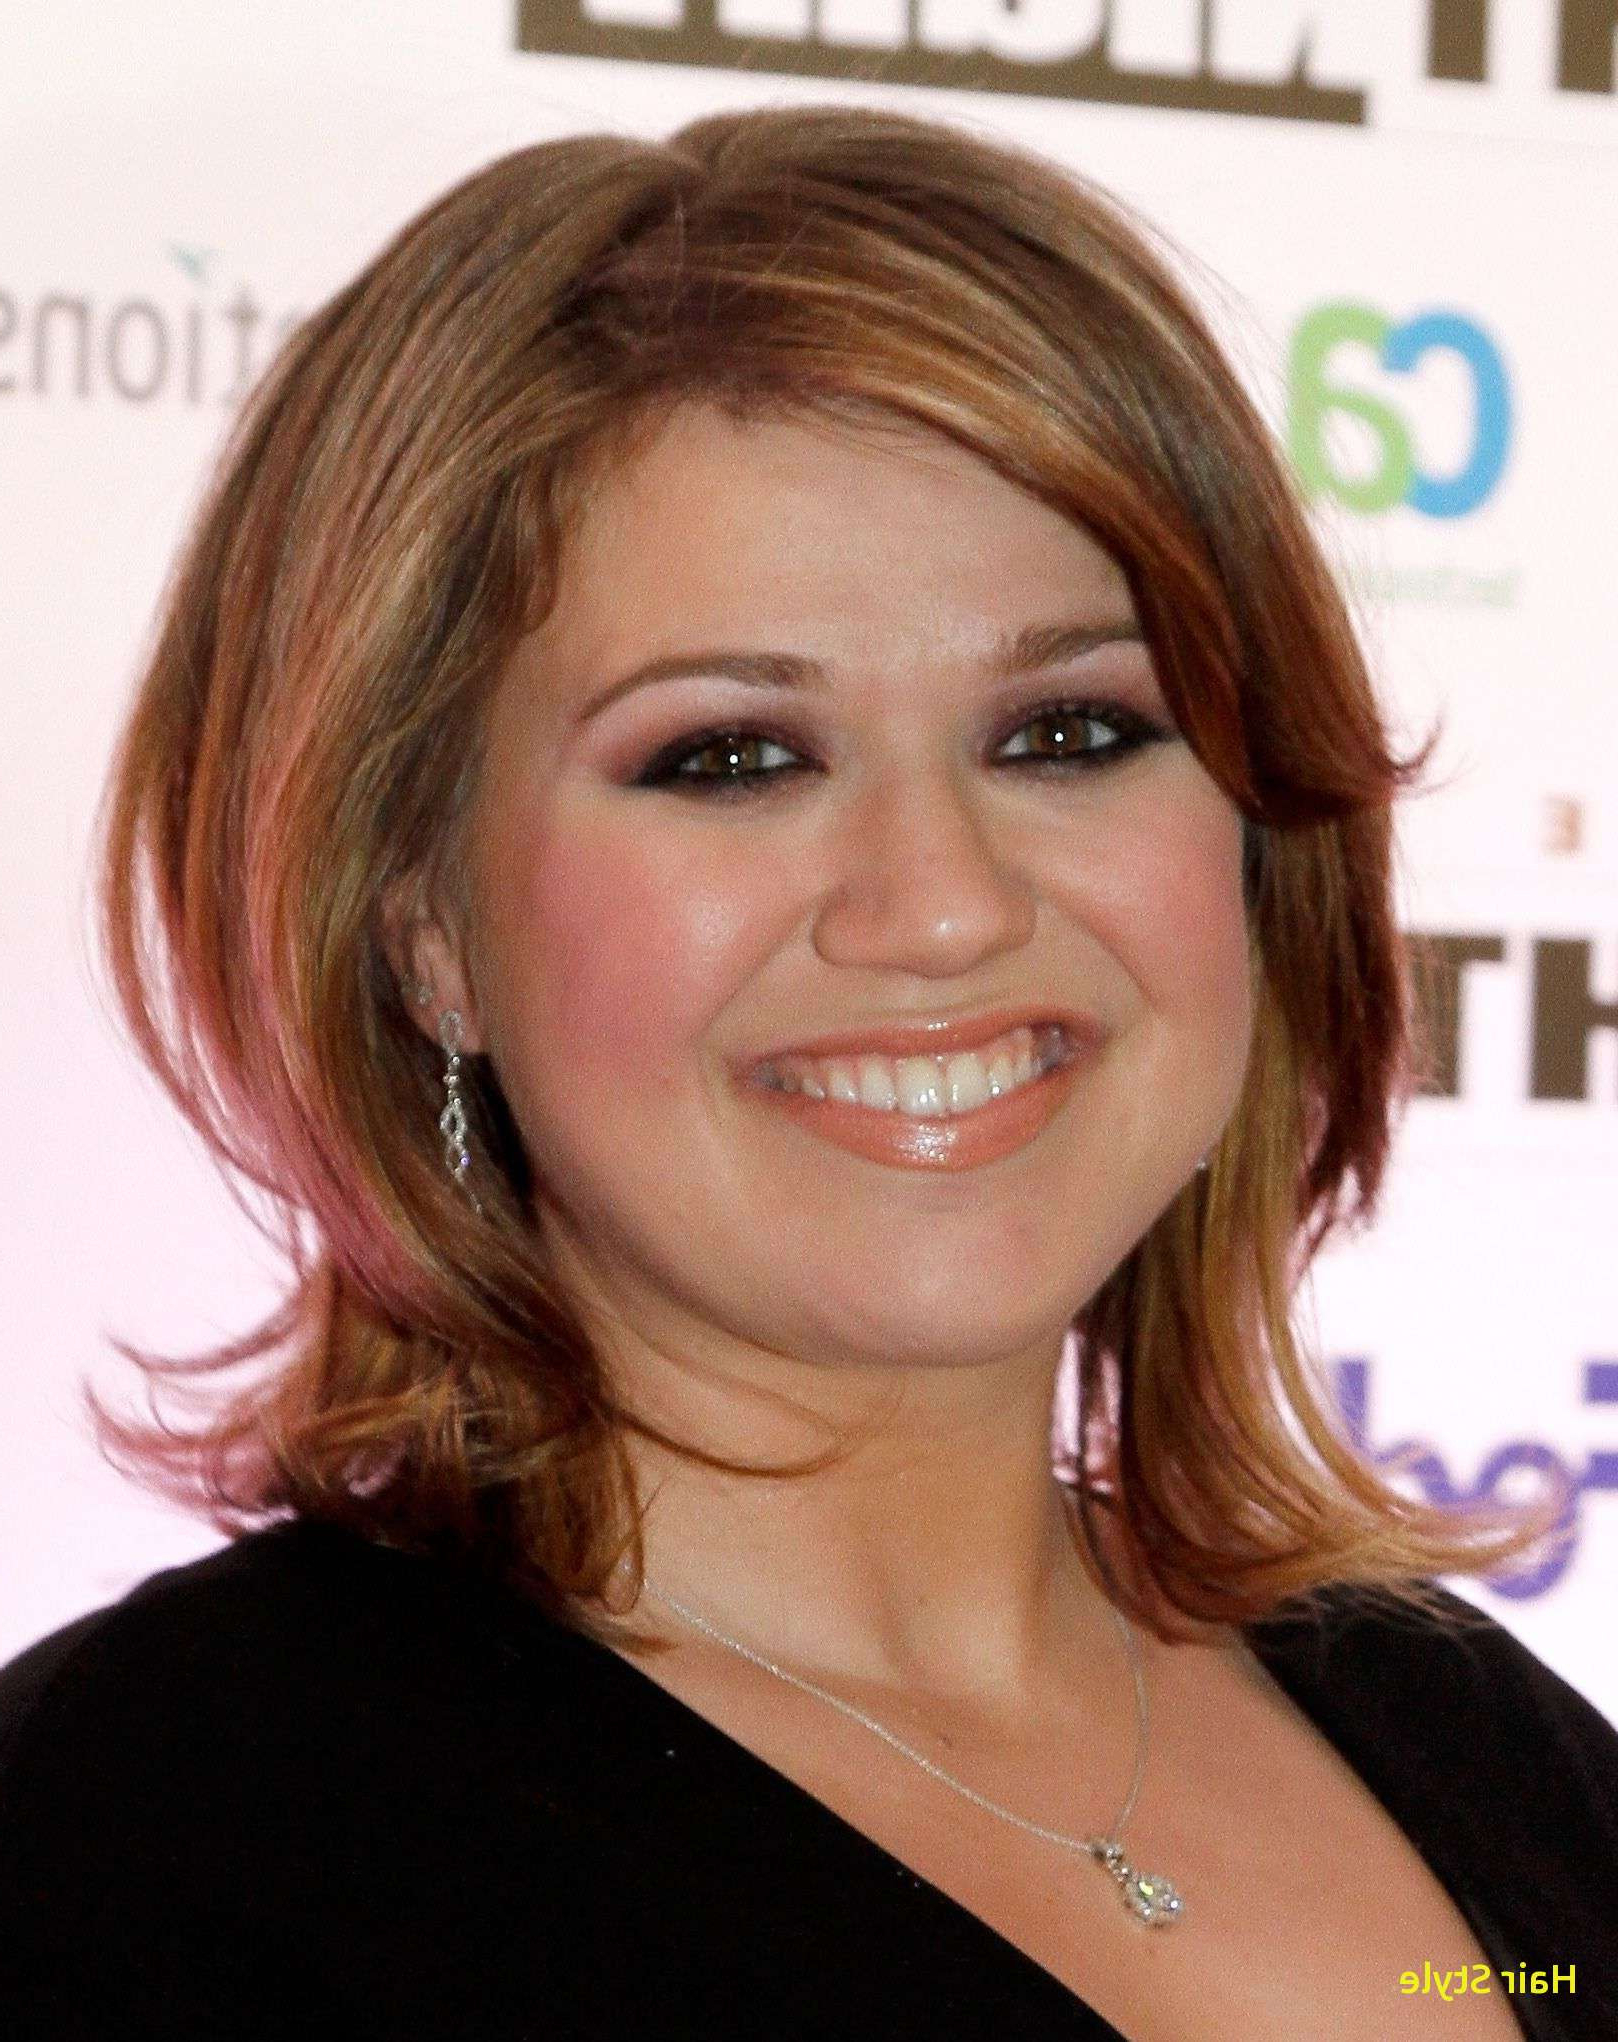 New Short Hairstyles For Round Fat Faces – Uternity regarding Short Hair Chubby